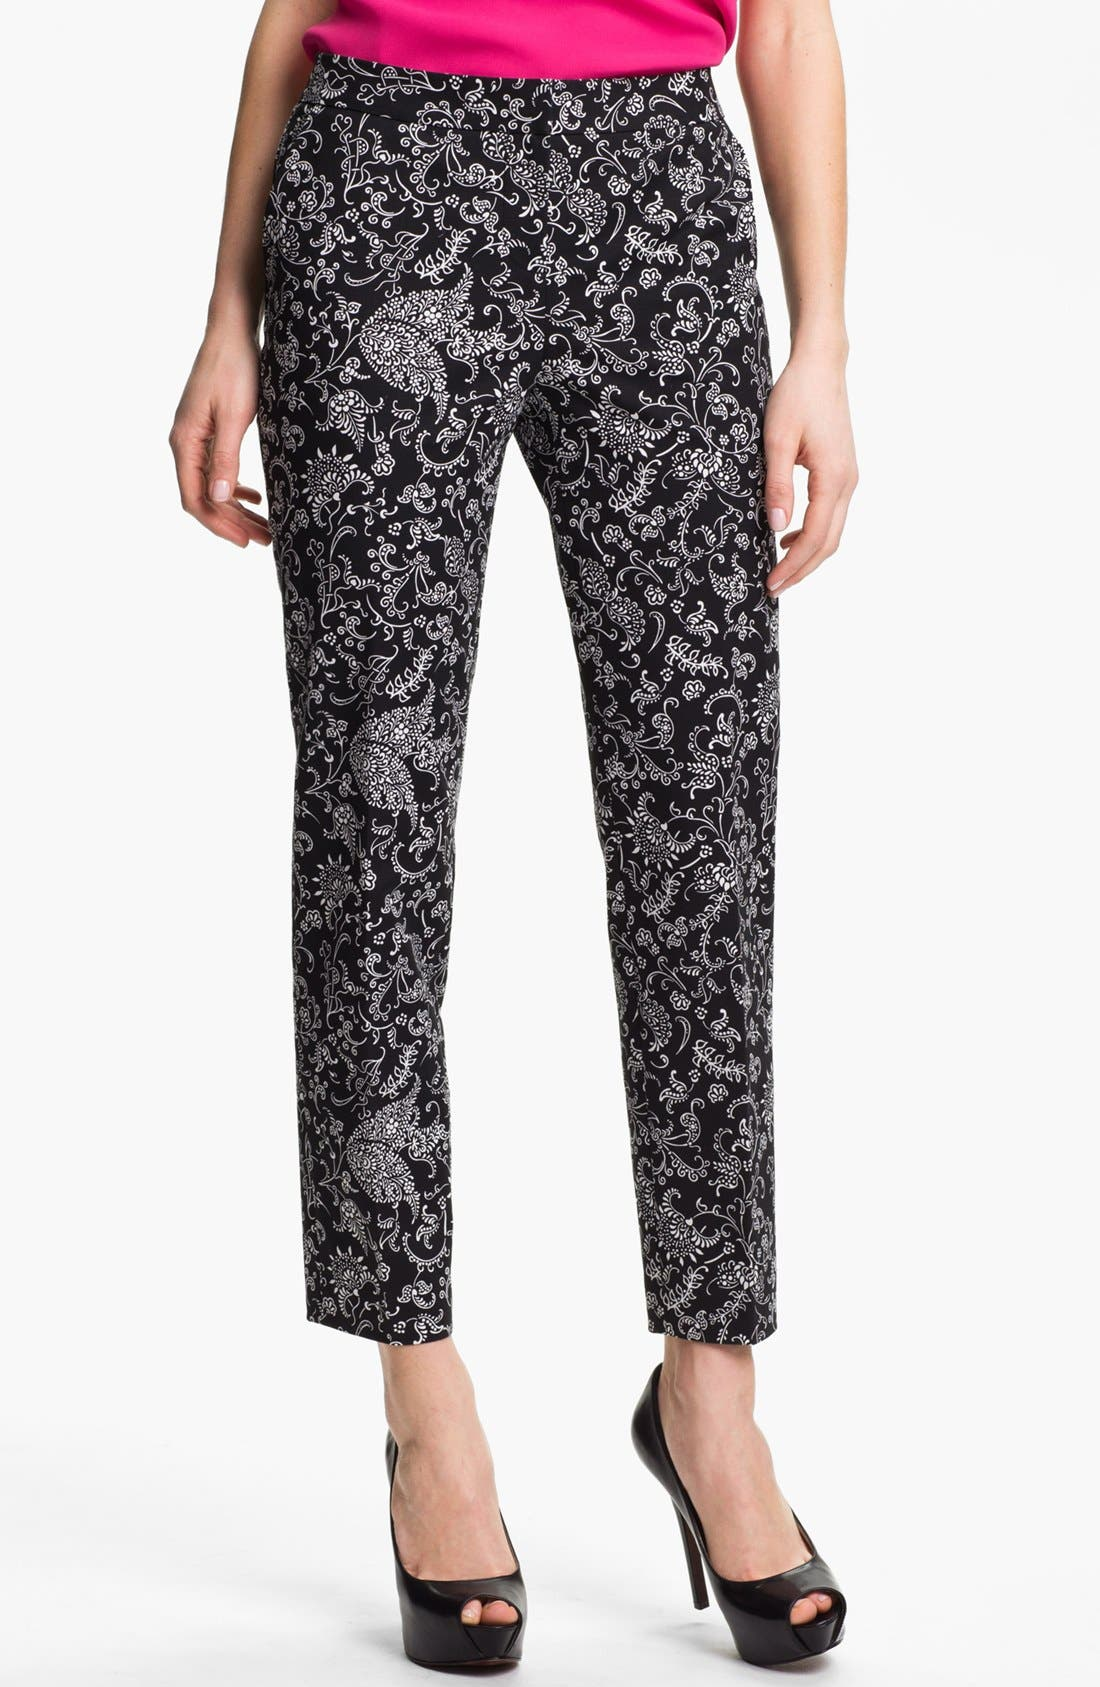 Alternate Image 1 Selected - Halogen® 'Taylor' Patterned Skinny Ankle Pants (Petite)